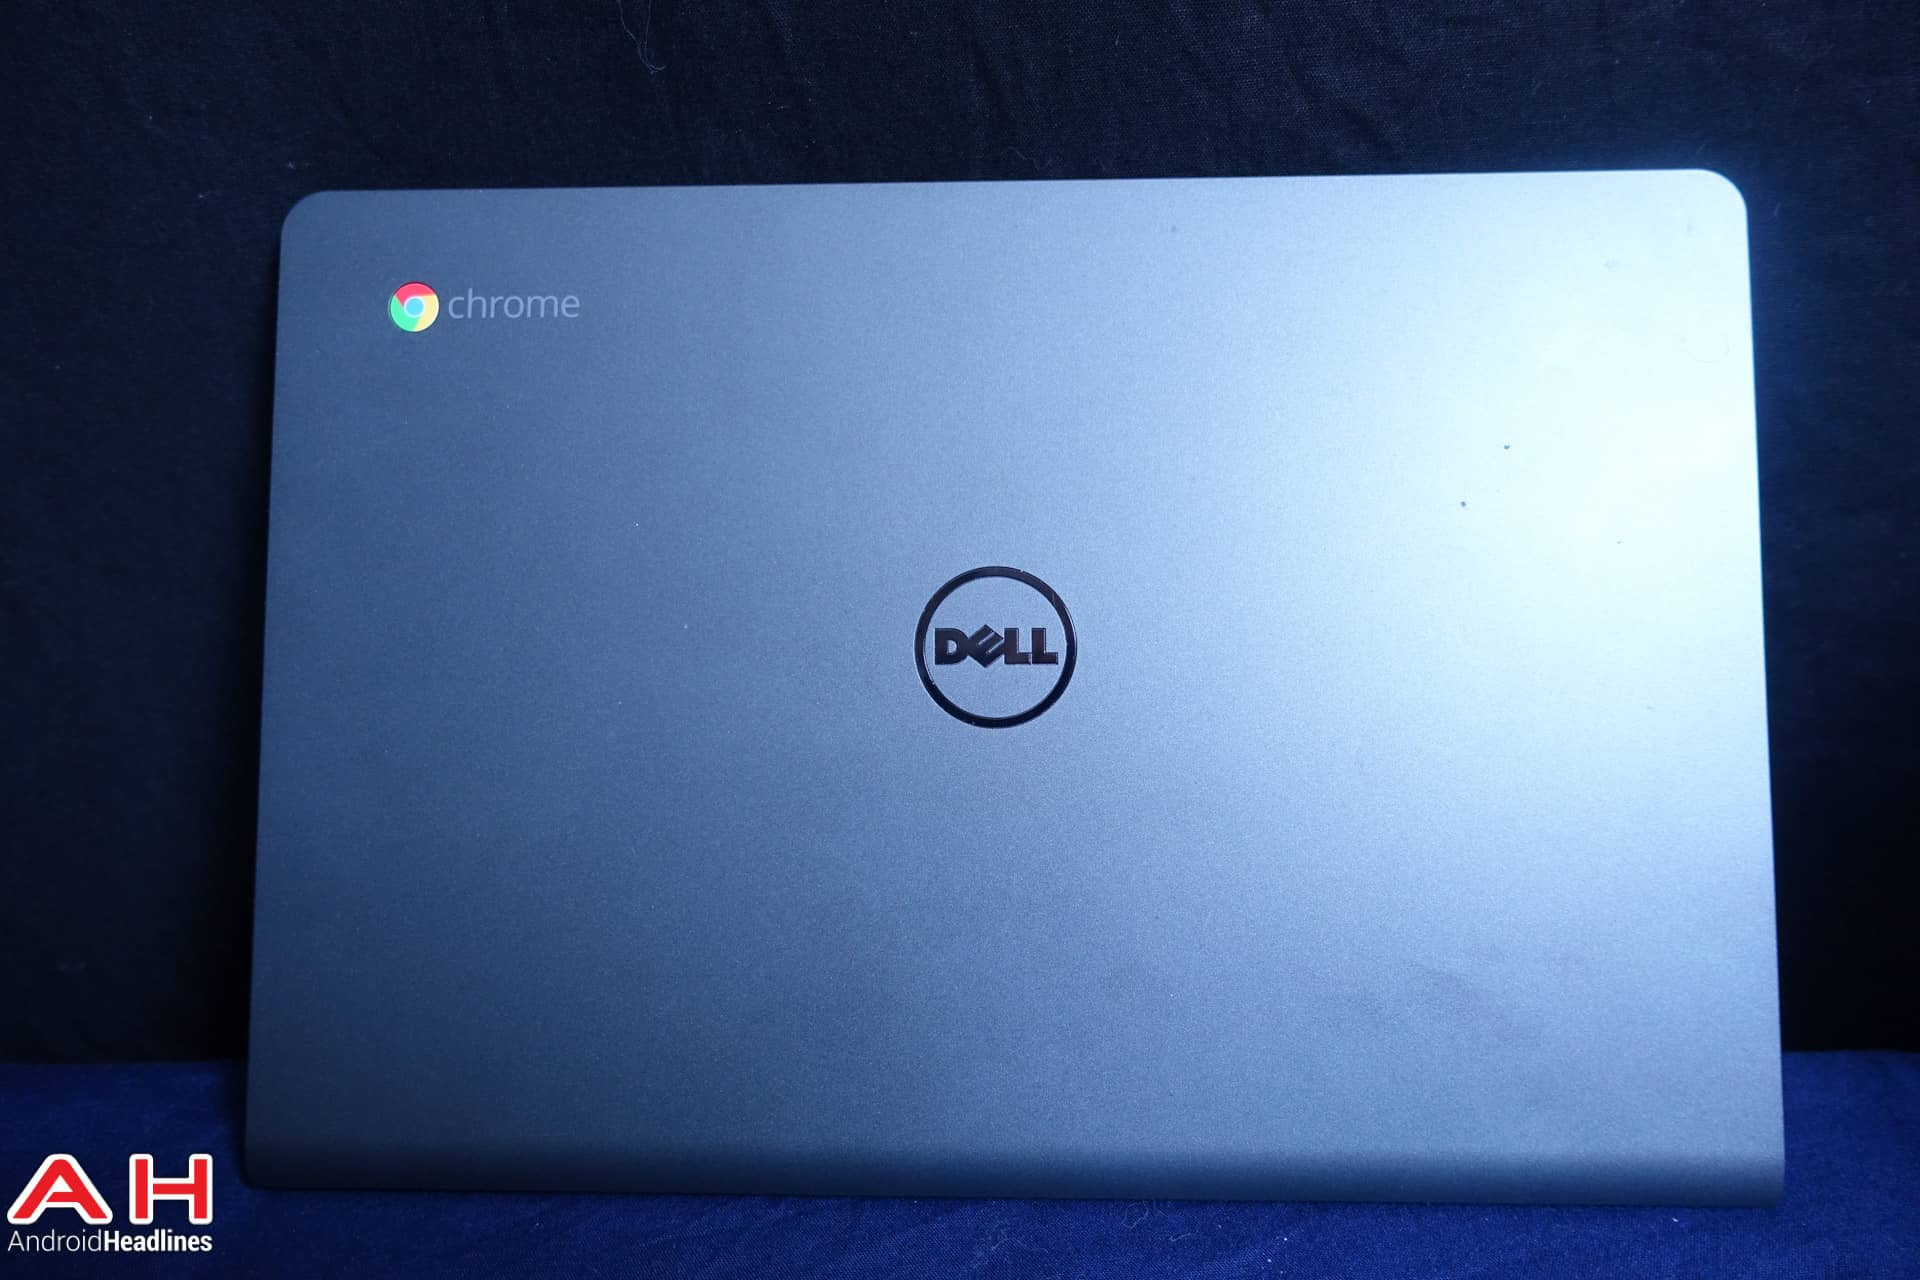 Dell-Chromebook-11-i3-AH-03167